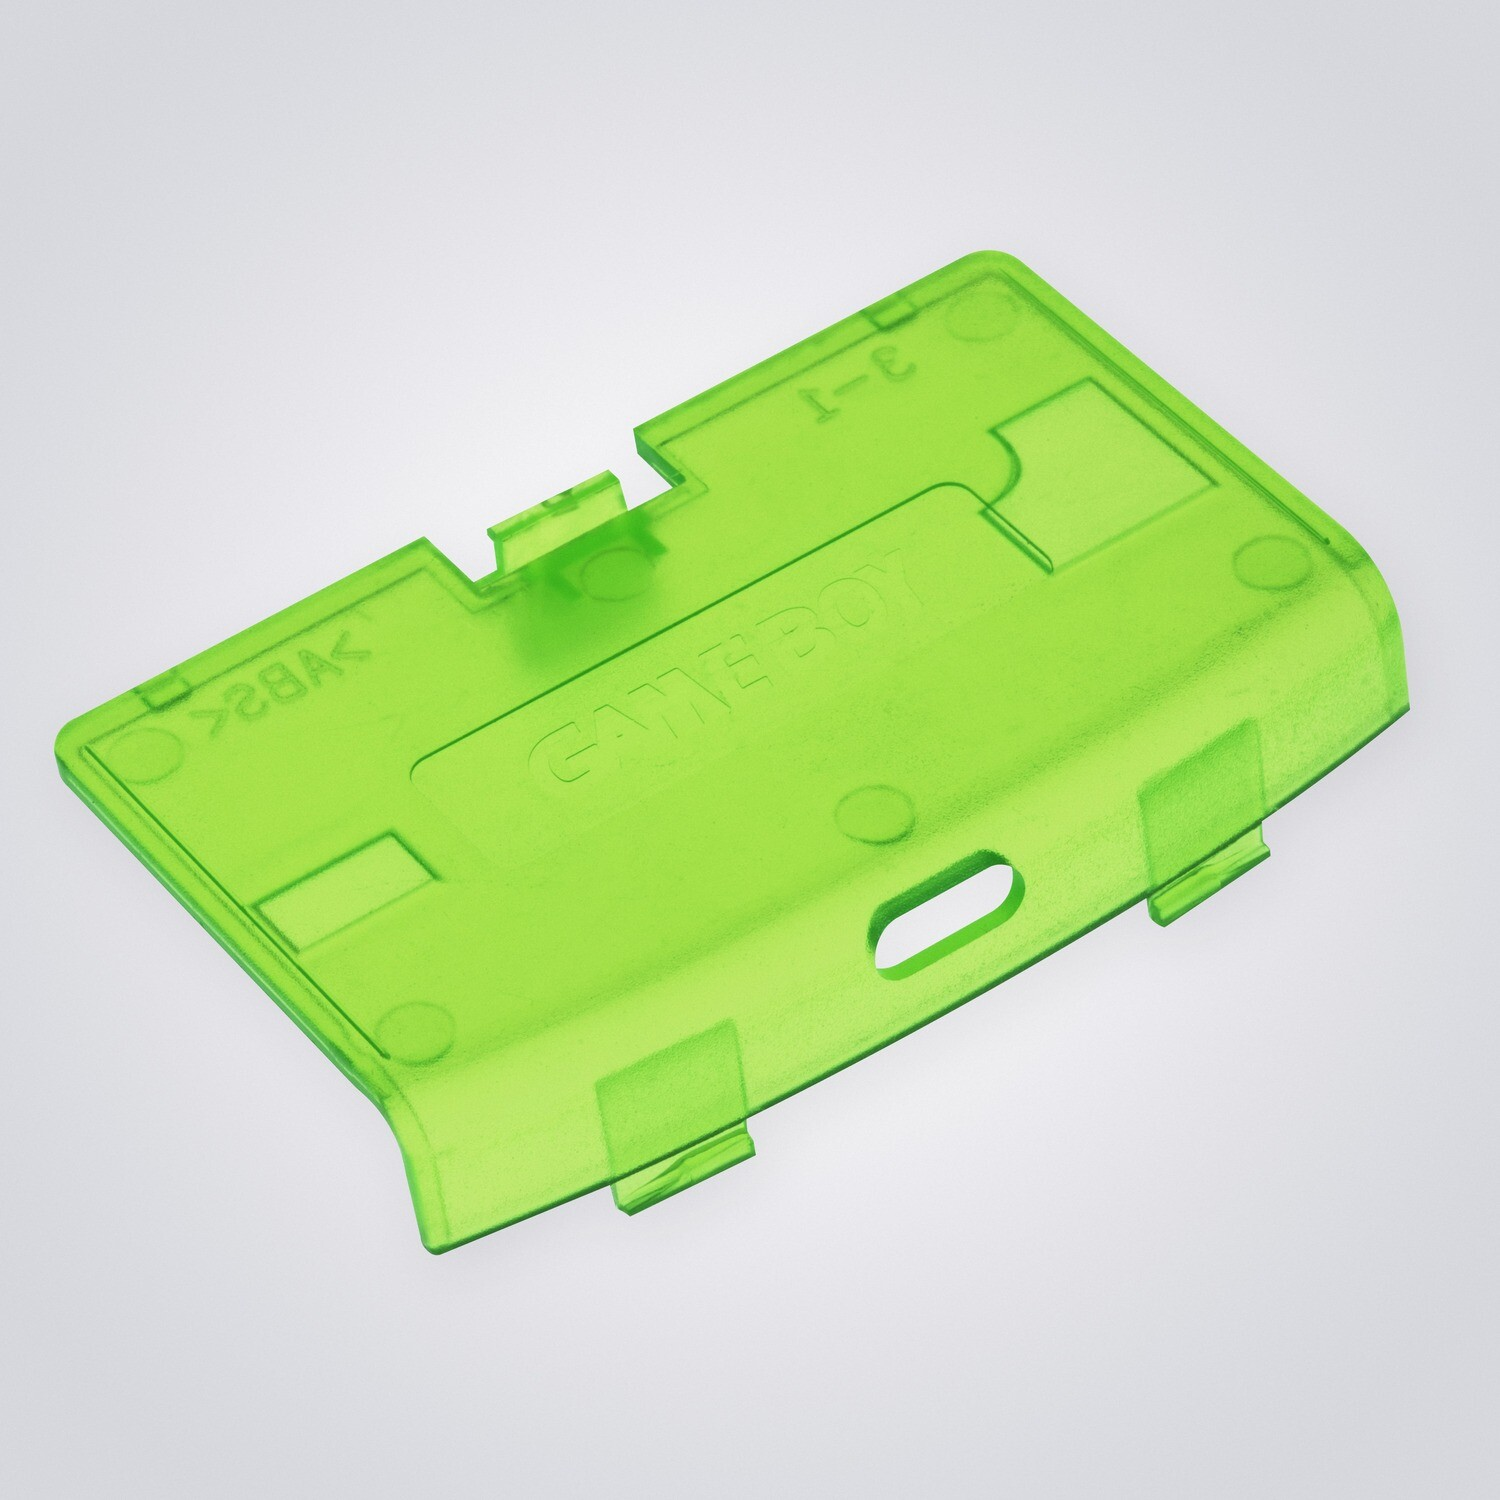 Game Boy Advance USB-C Battery Cover (Clear Green)